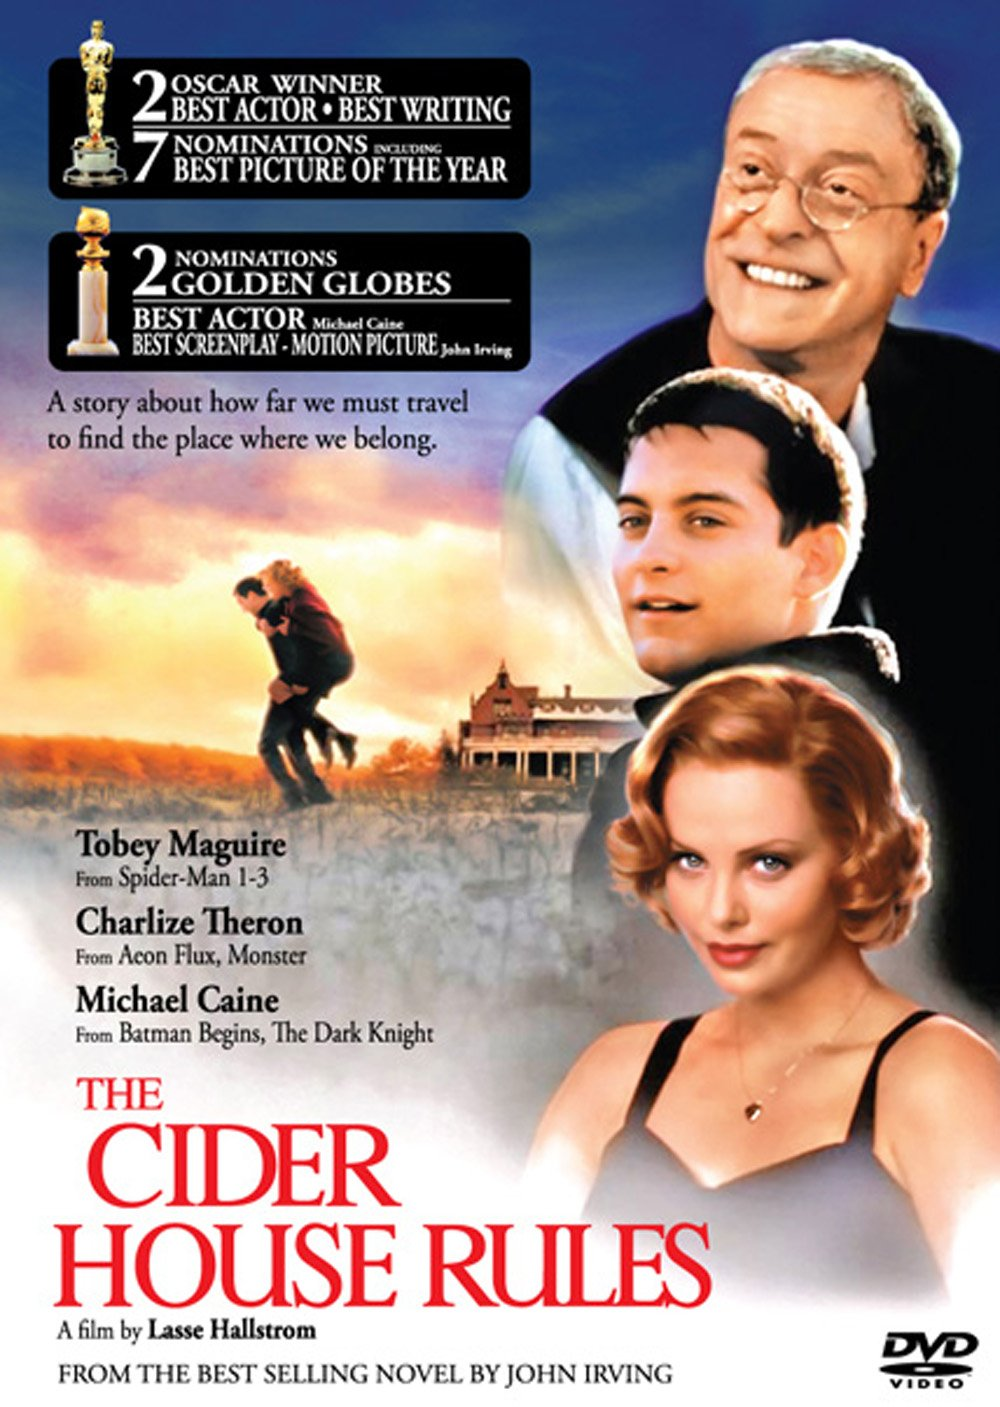 The Cider House Rules (1999): Amazon.co.uk: Tobey Maguire, Charlize Theron,  Michael Caine, Lasse Hallström: DVD U0026 Blu Ray